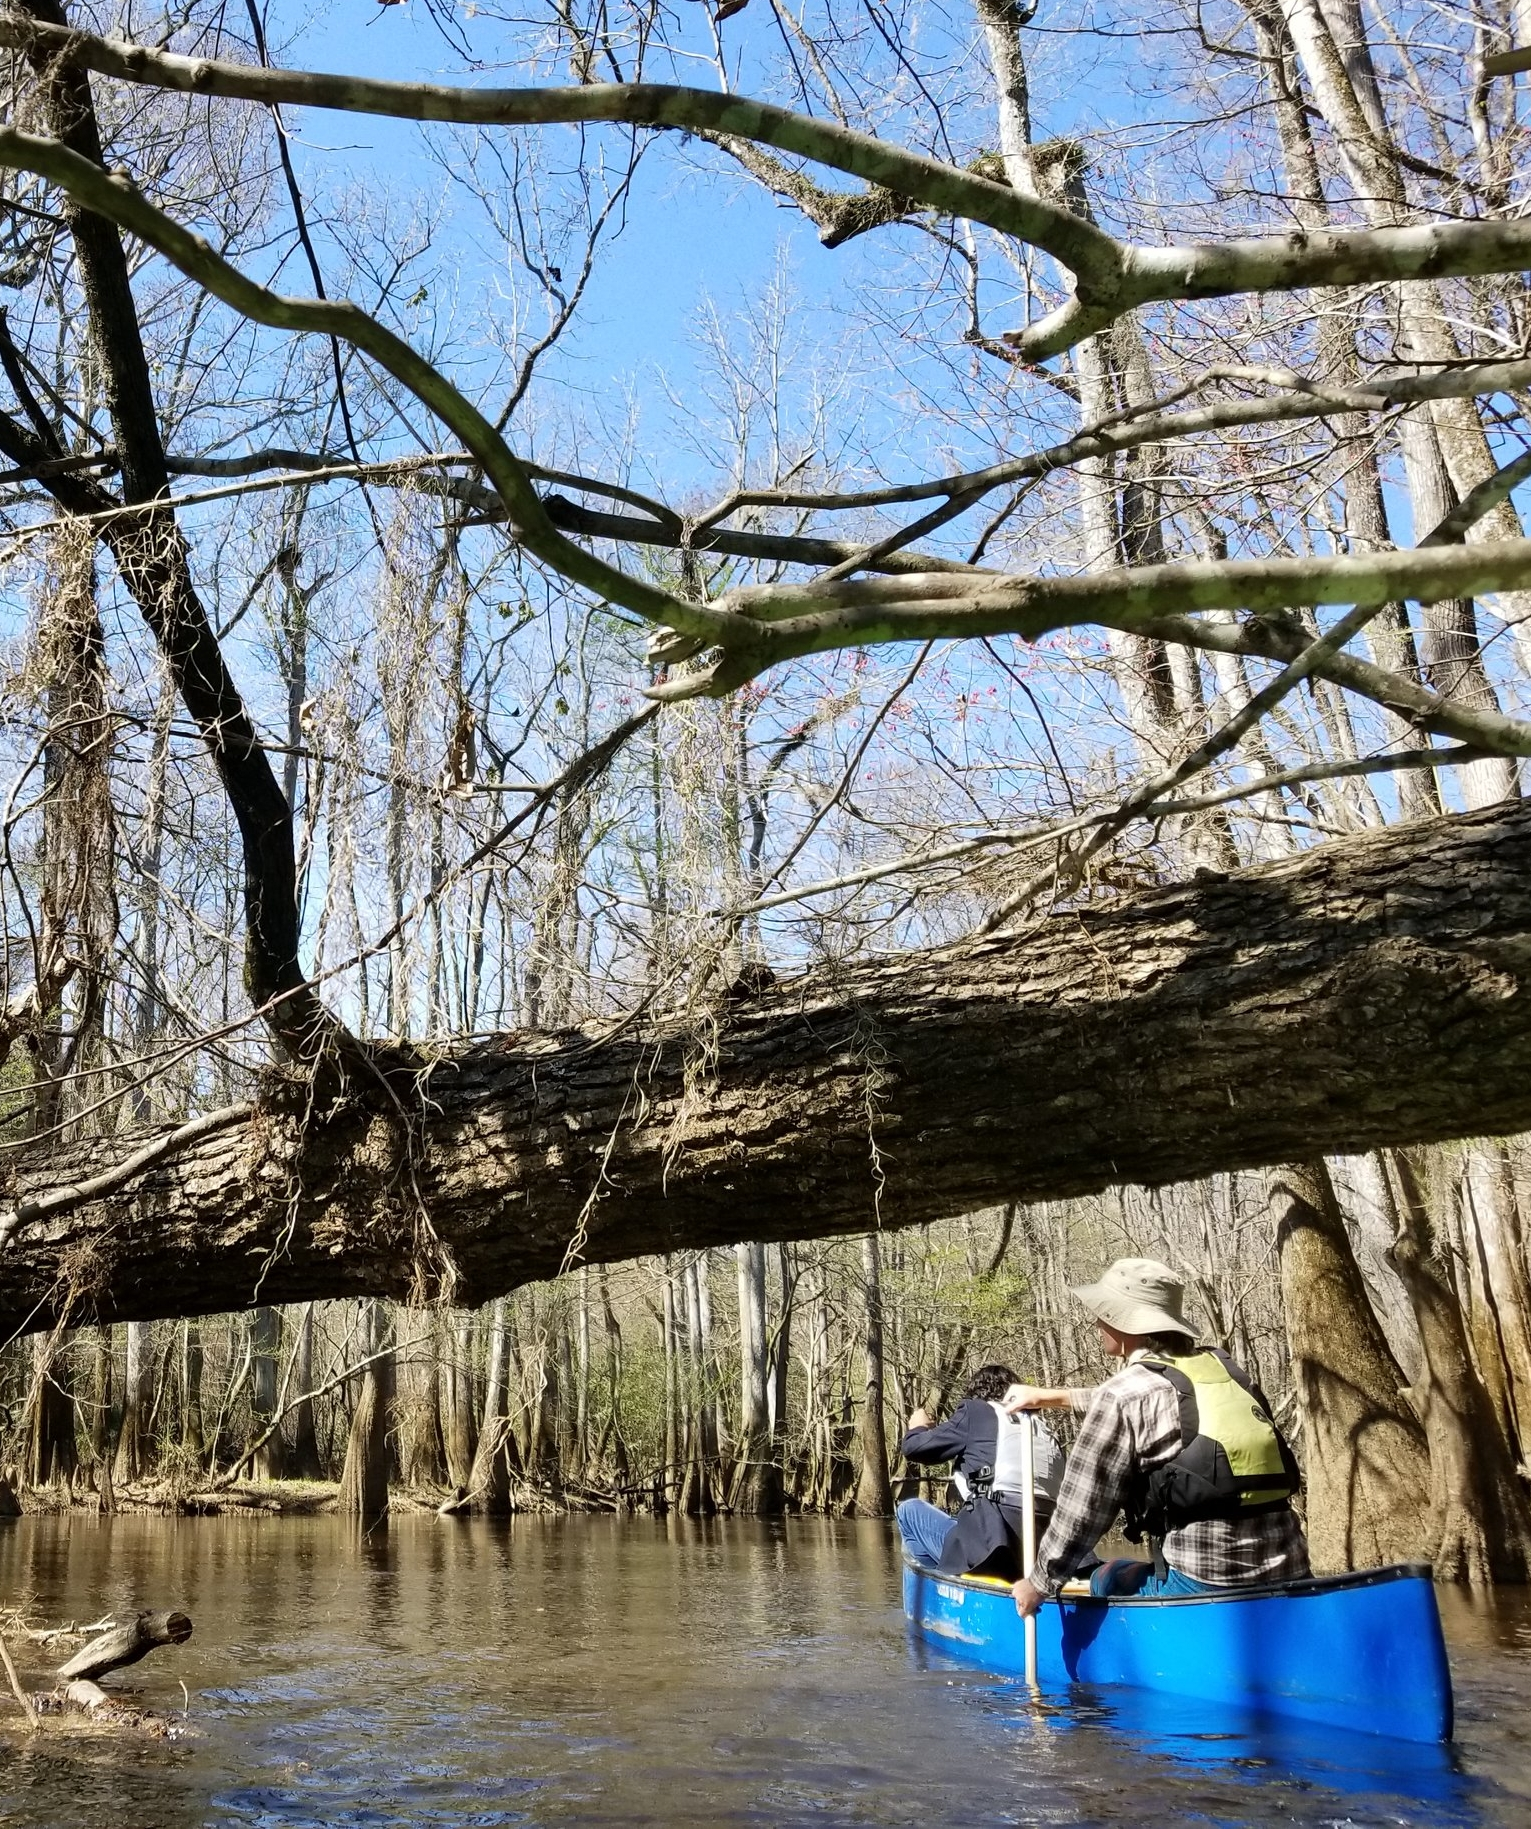 Congaree National Park guided kayaking/canoeing trips.  These trips are only offered in the Spring and Fall. Group sizes are limited without advanced notice. This is a 3 hour trip (on the water) that is about 30 minutes from Columbia. Wear old shoes and bring a change of cloths. Bathrooms are available to change at the start or end of the trip. $80.  www.palmettooutdoor.com